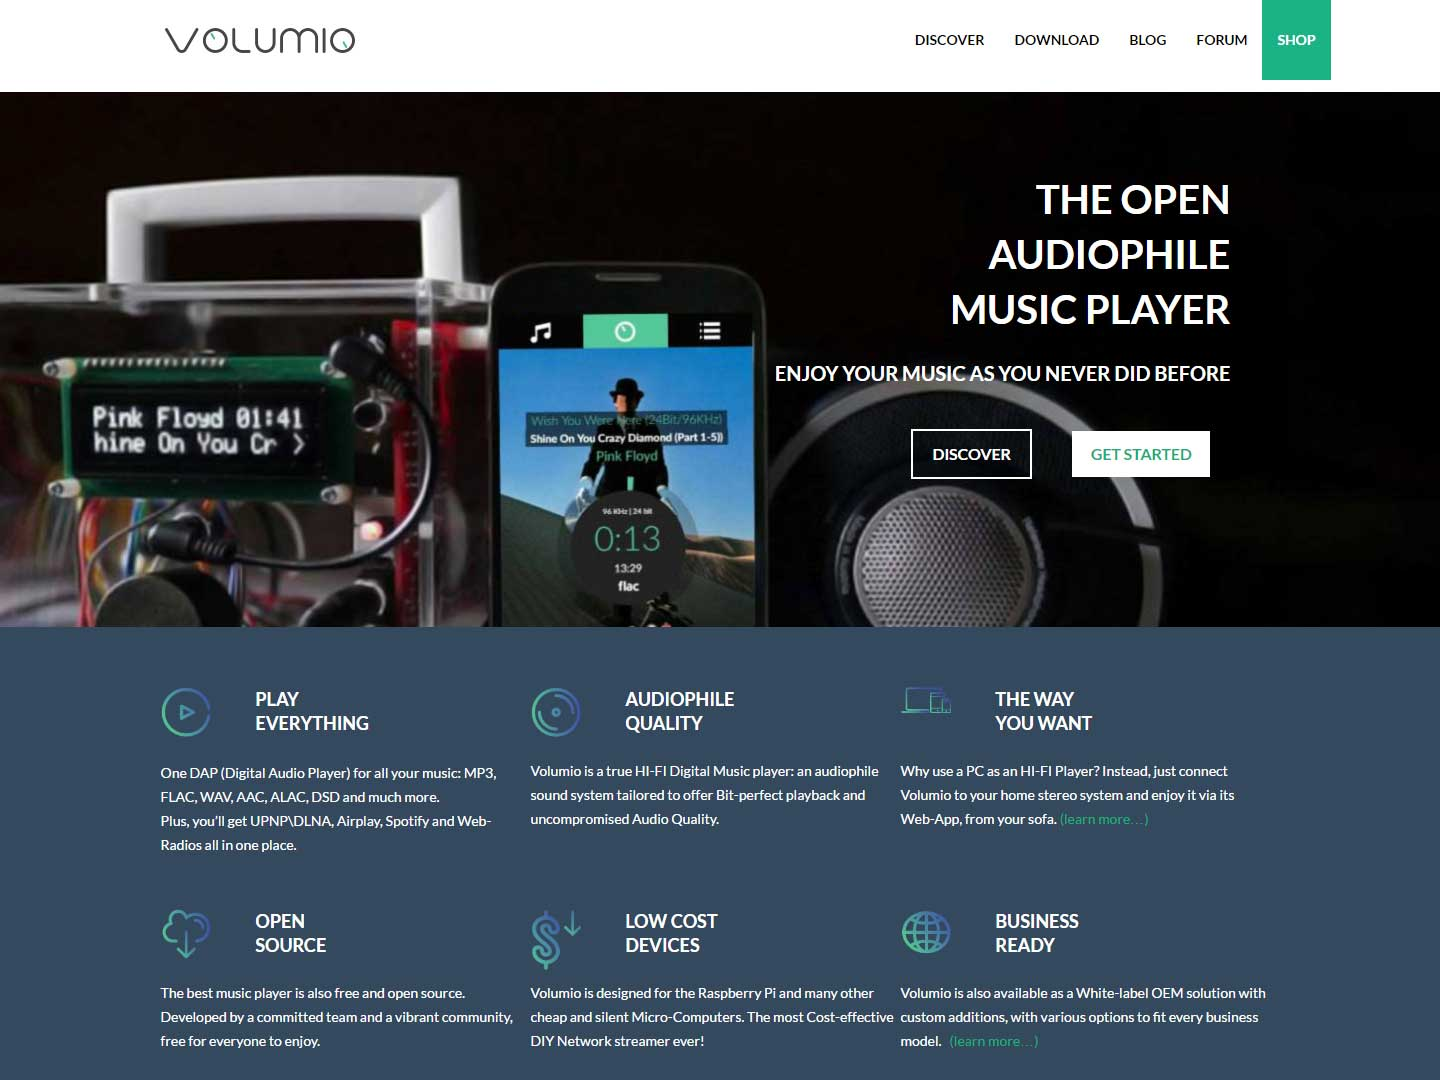 volumio-website.jpg